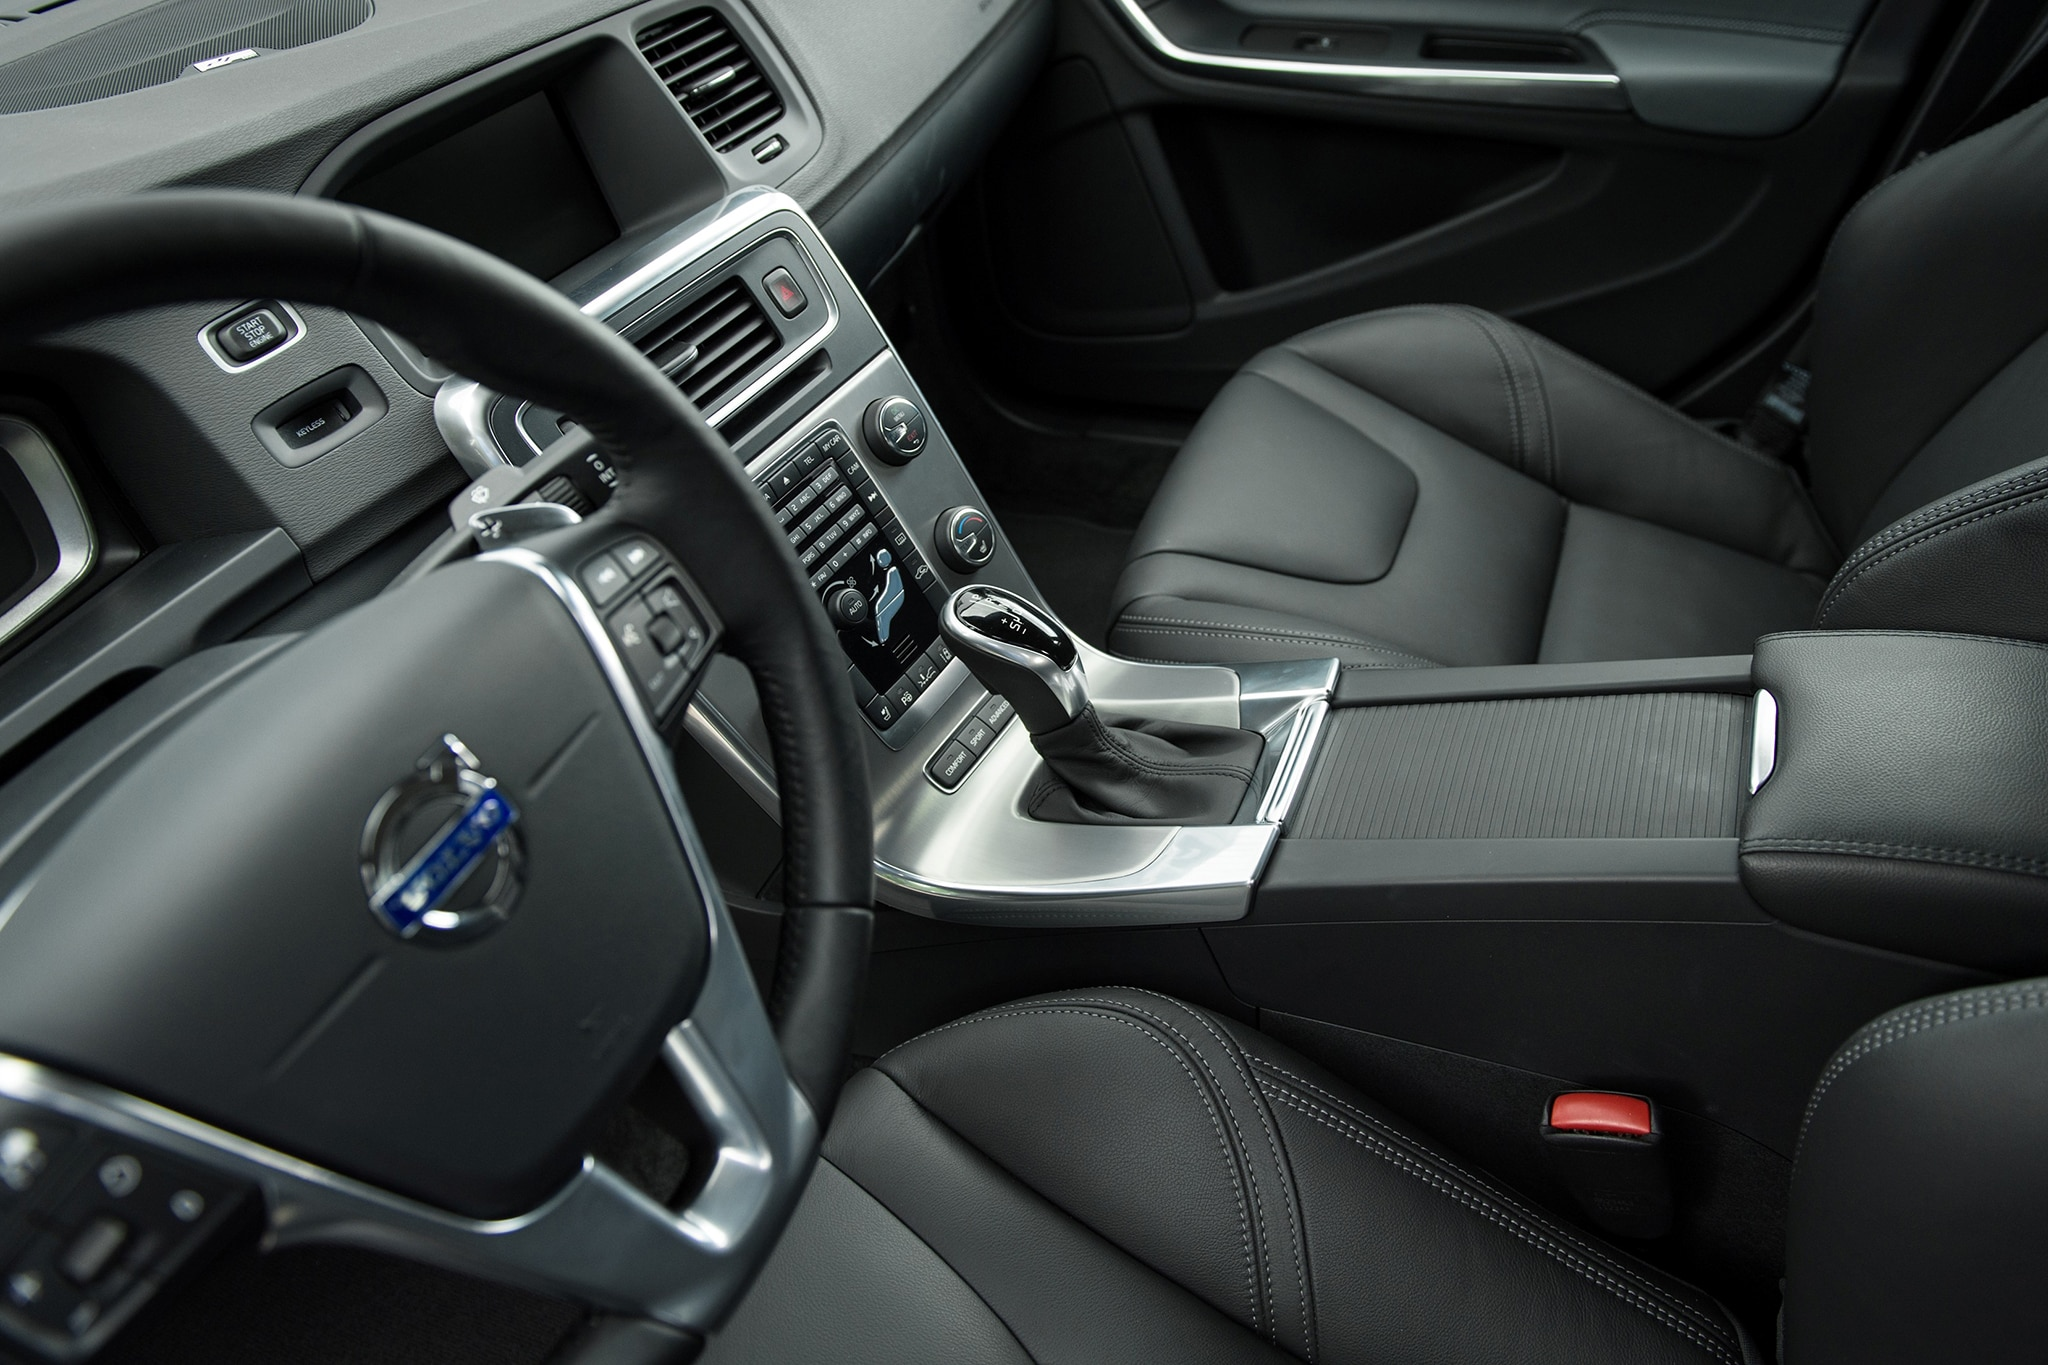 2015 Volvo V60 and S60 Rated at 37 MPG Highway - Automobile Magazine